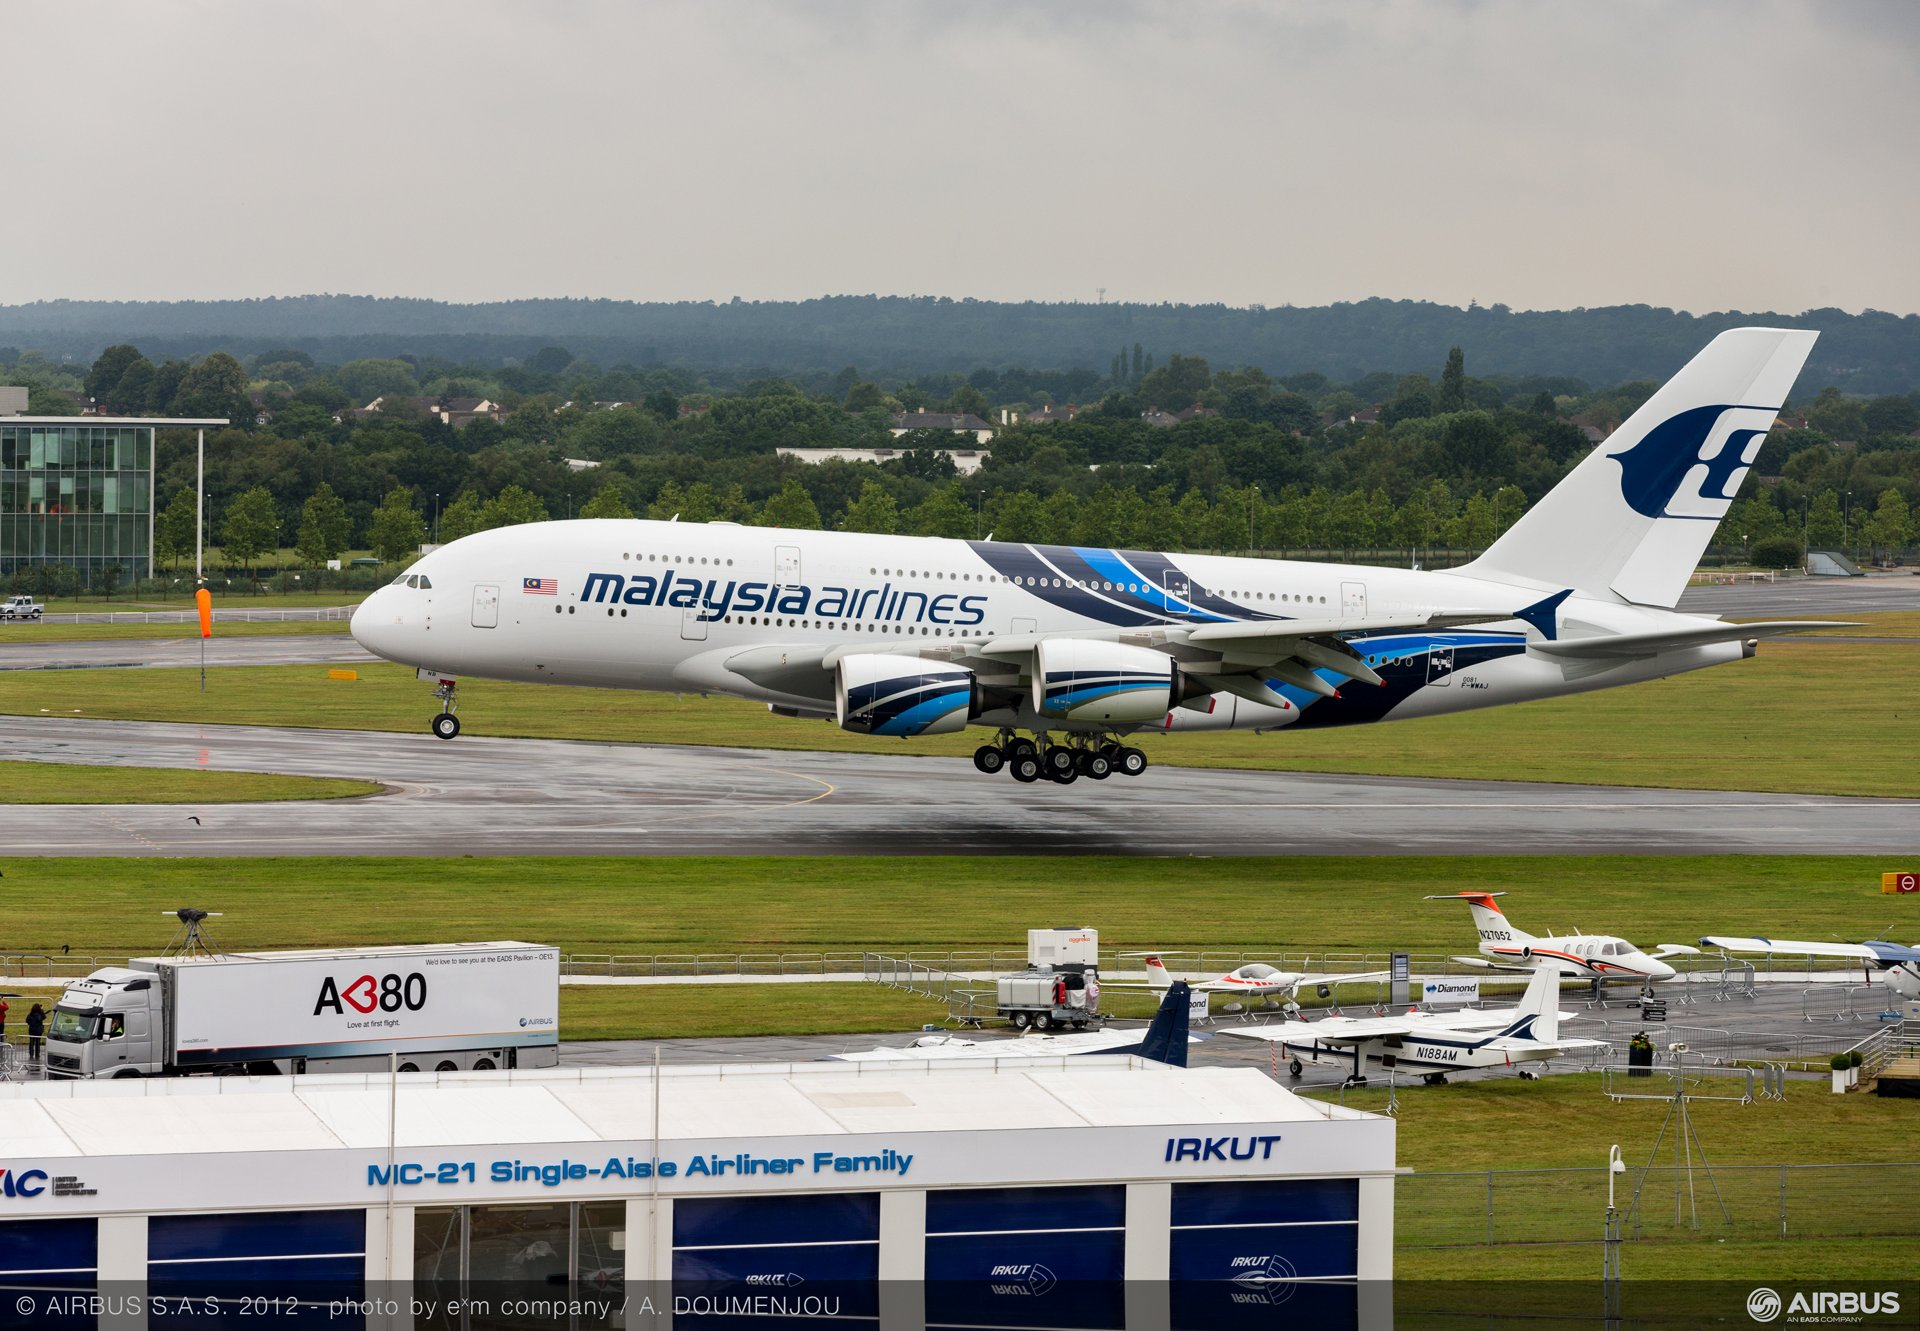 Malaysia Airlines' no. 2 A380 was brought from Toulouse, France on Sunday, 8 July for a multi-day participation in the 2012 Farnborough Airshow